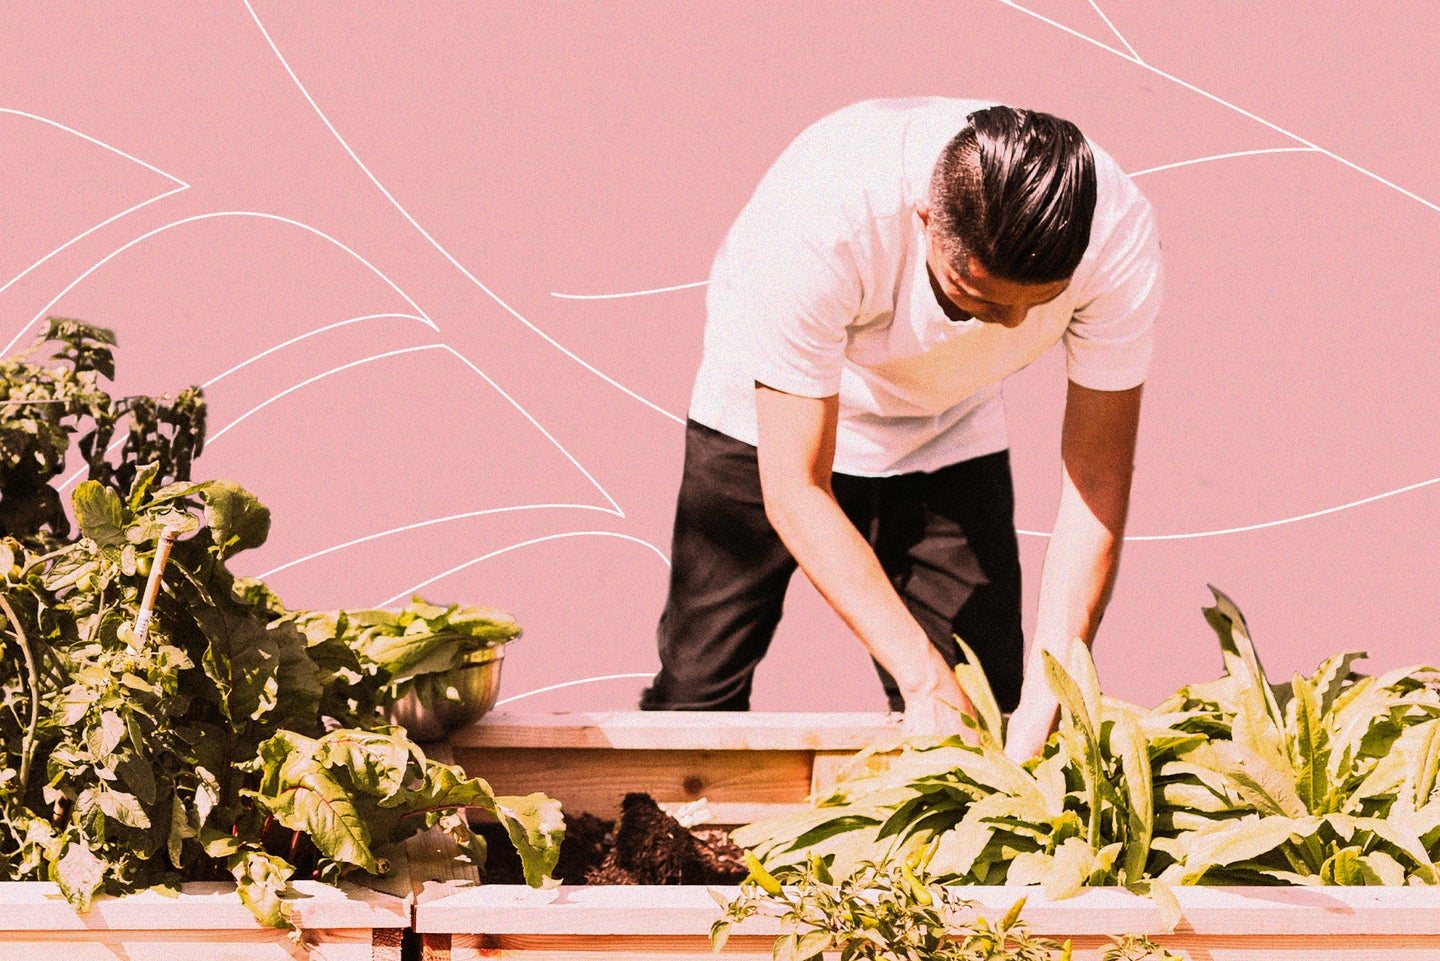 A person gardening in a wooden planter box.